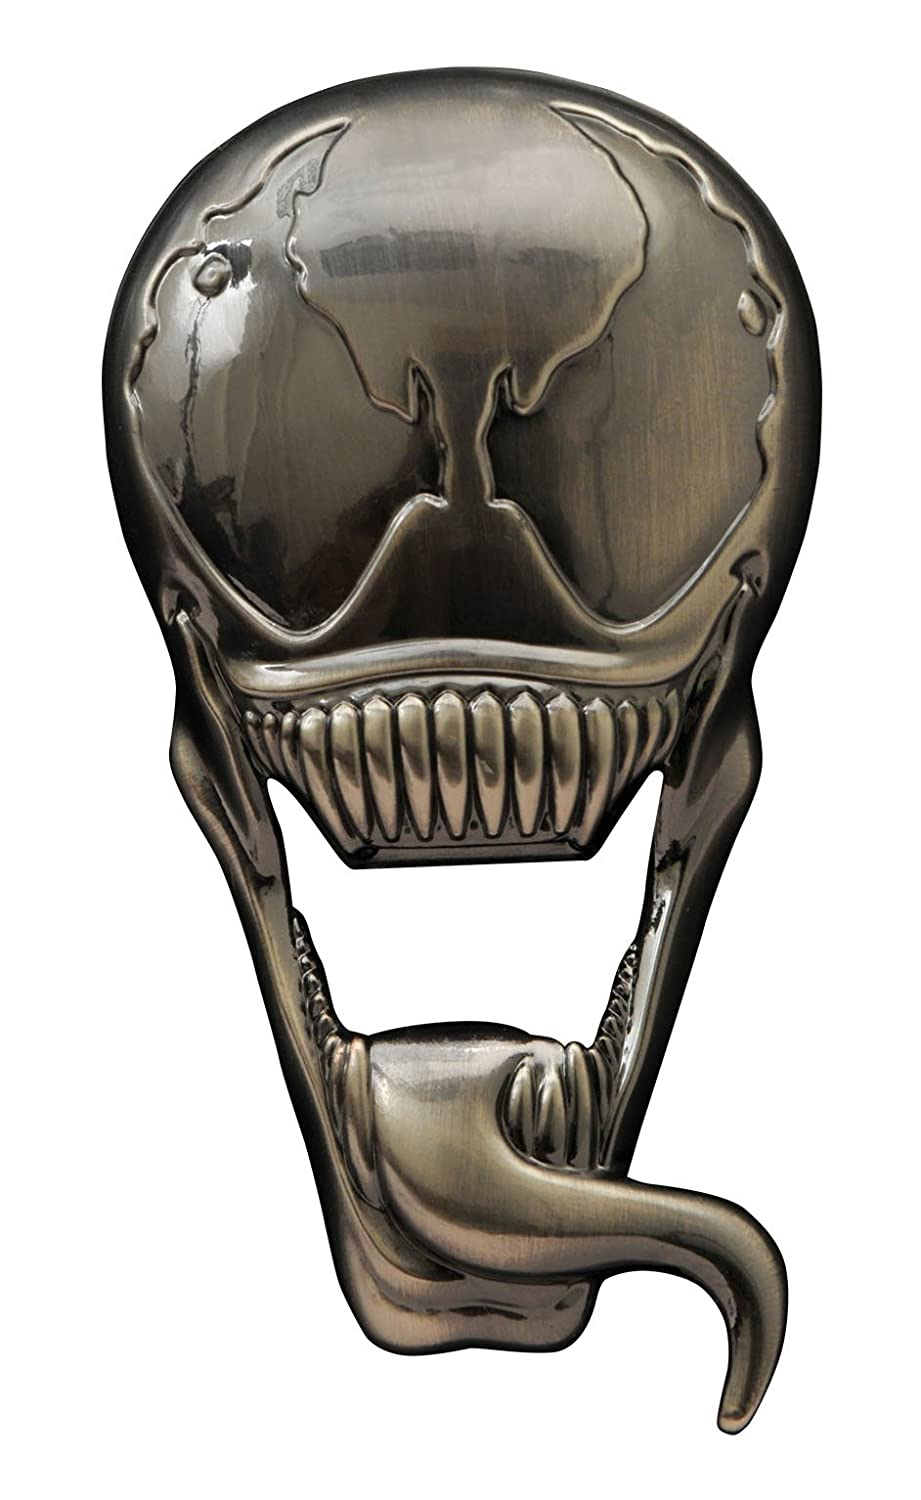 Diamond Select Toys Marvel Venom Metal Bottle Opener OCT131849